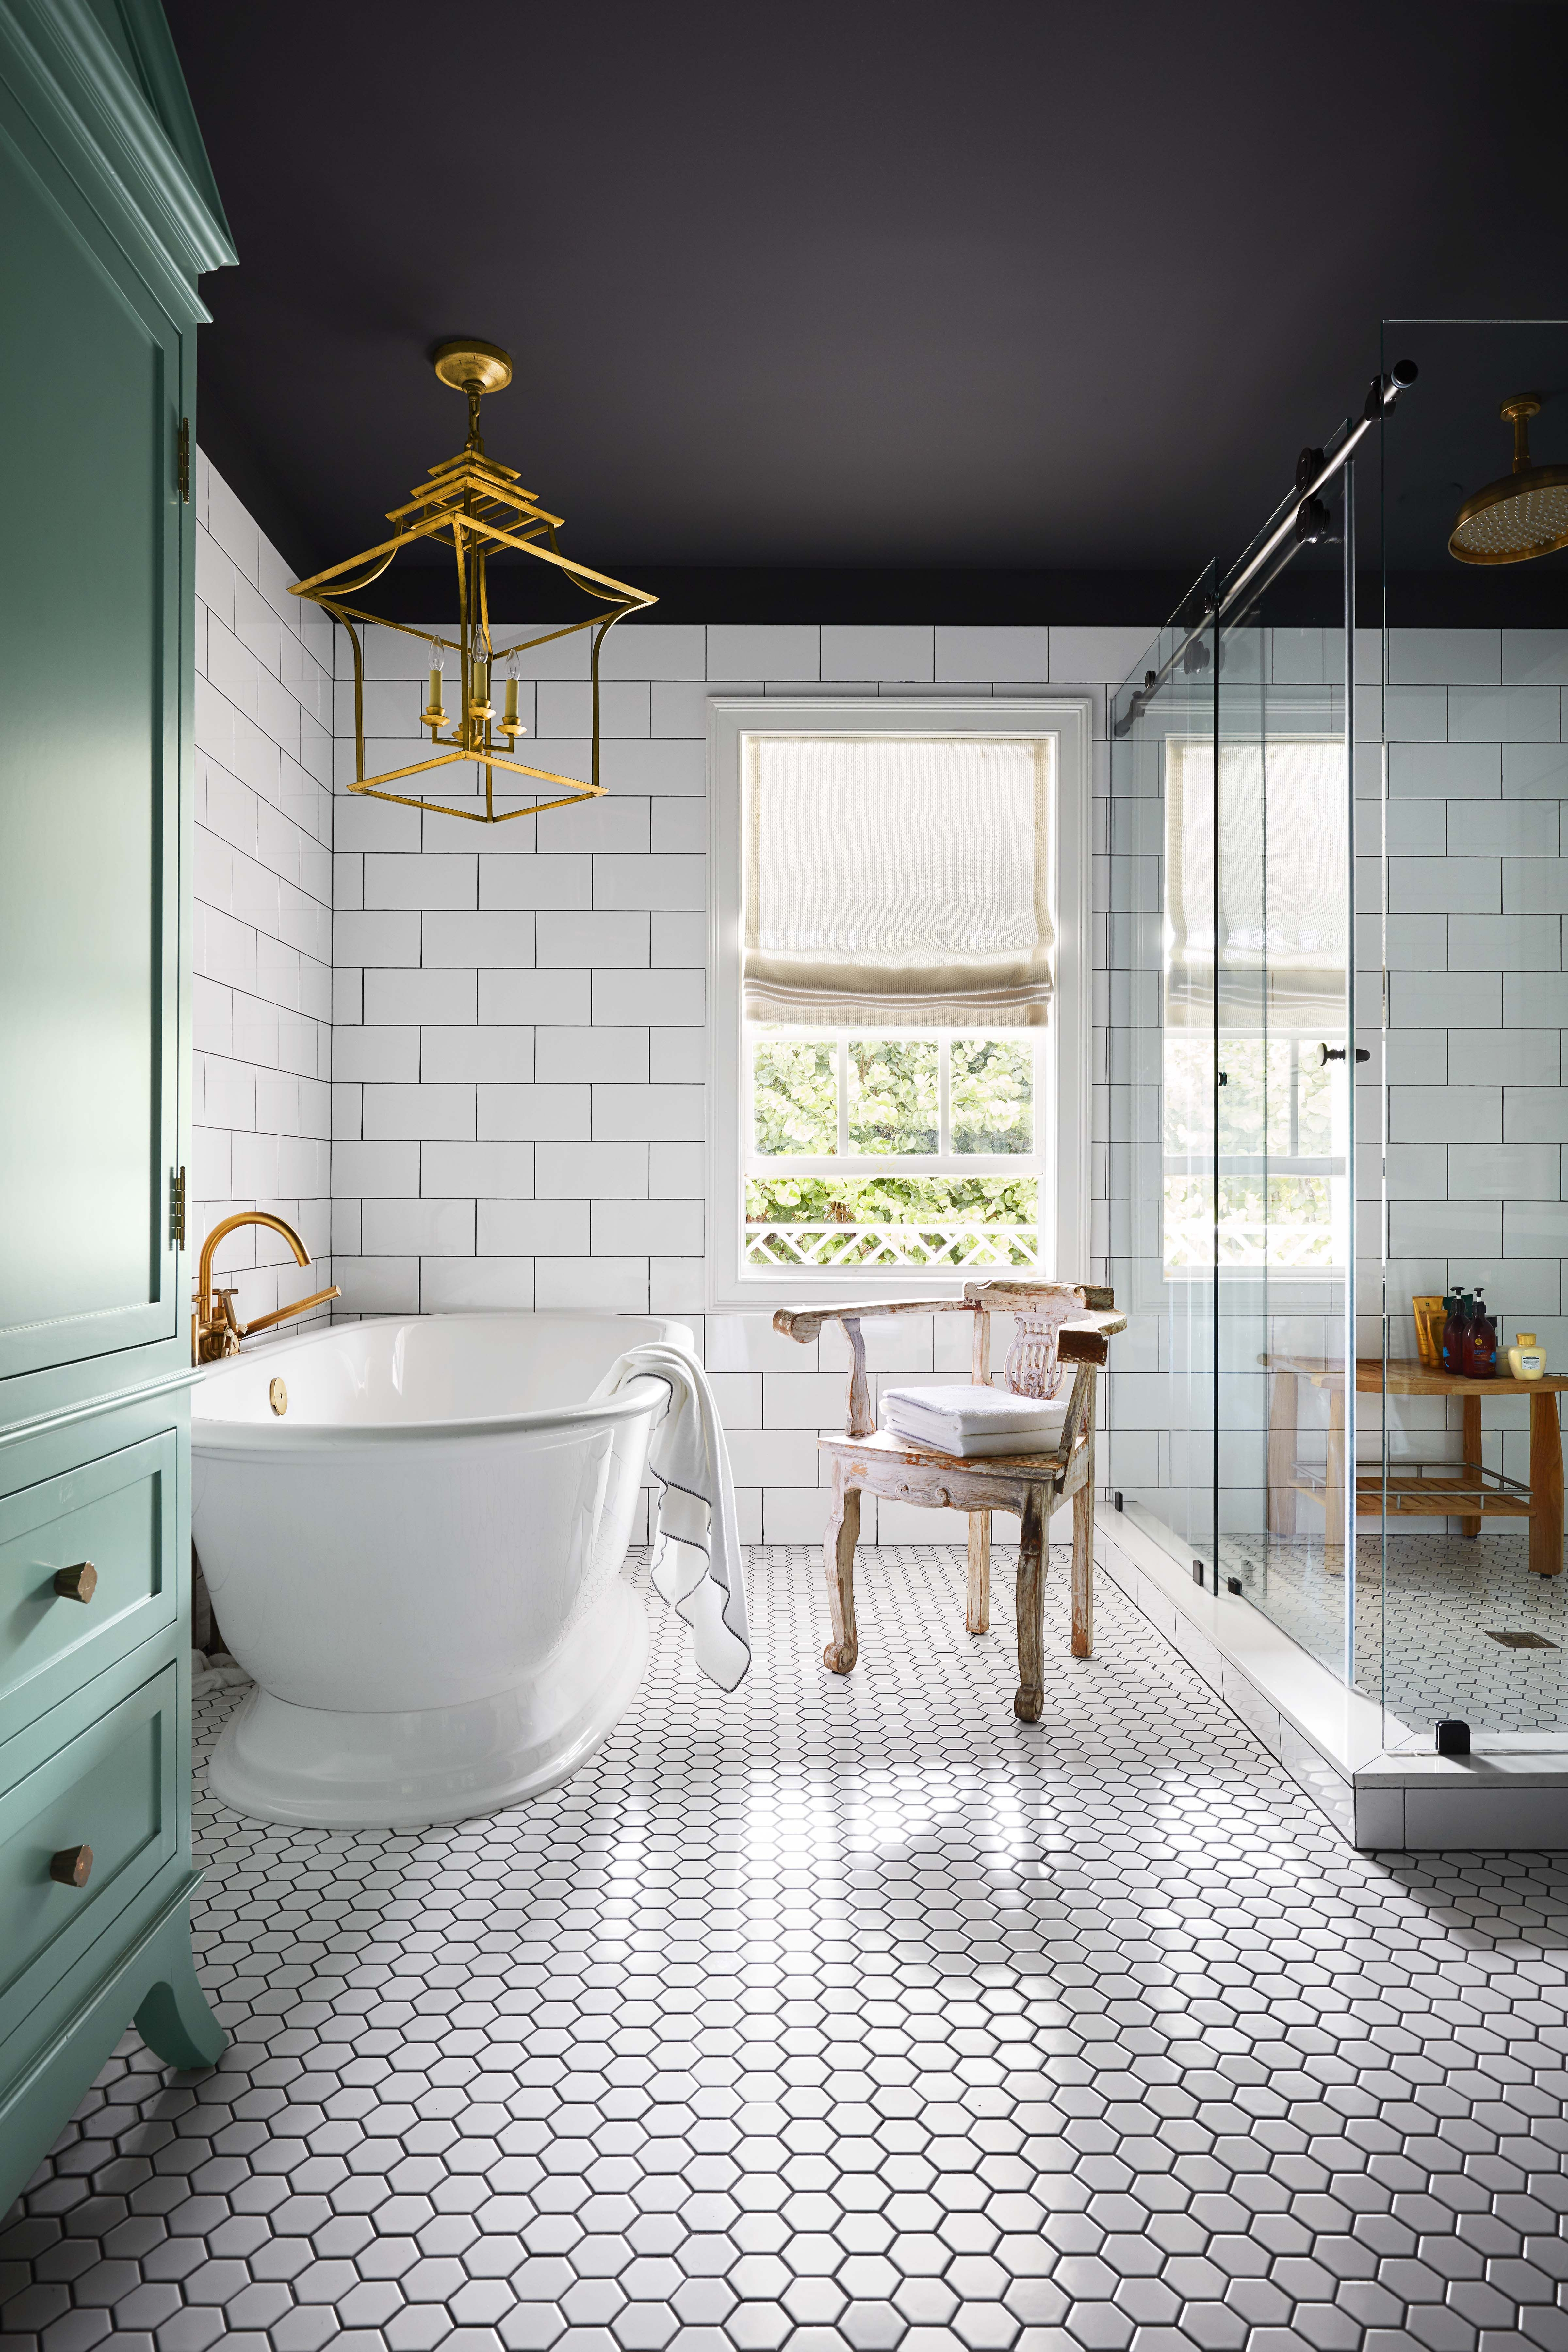 Bathroom Renovation Guide How To Remodel Your Bathroom